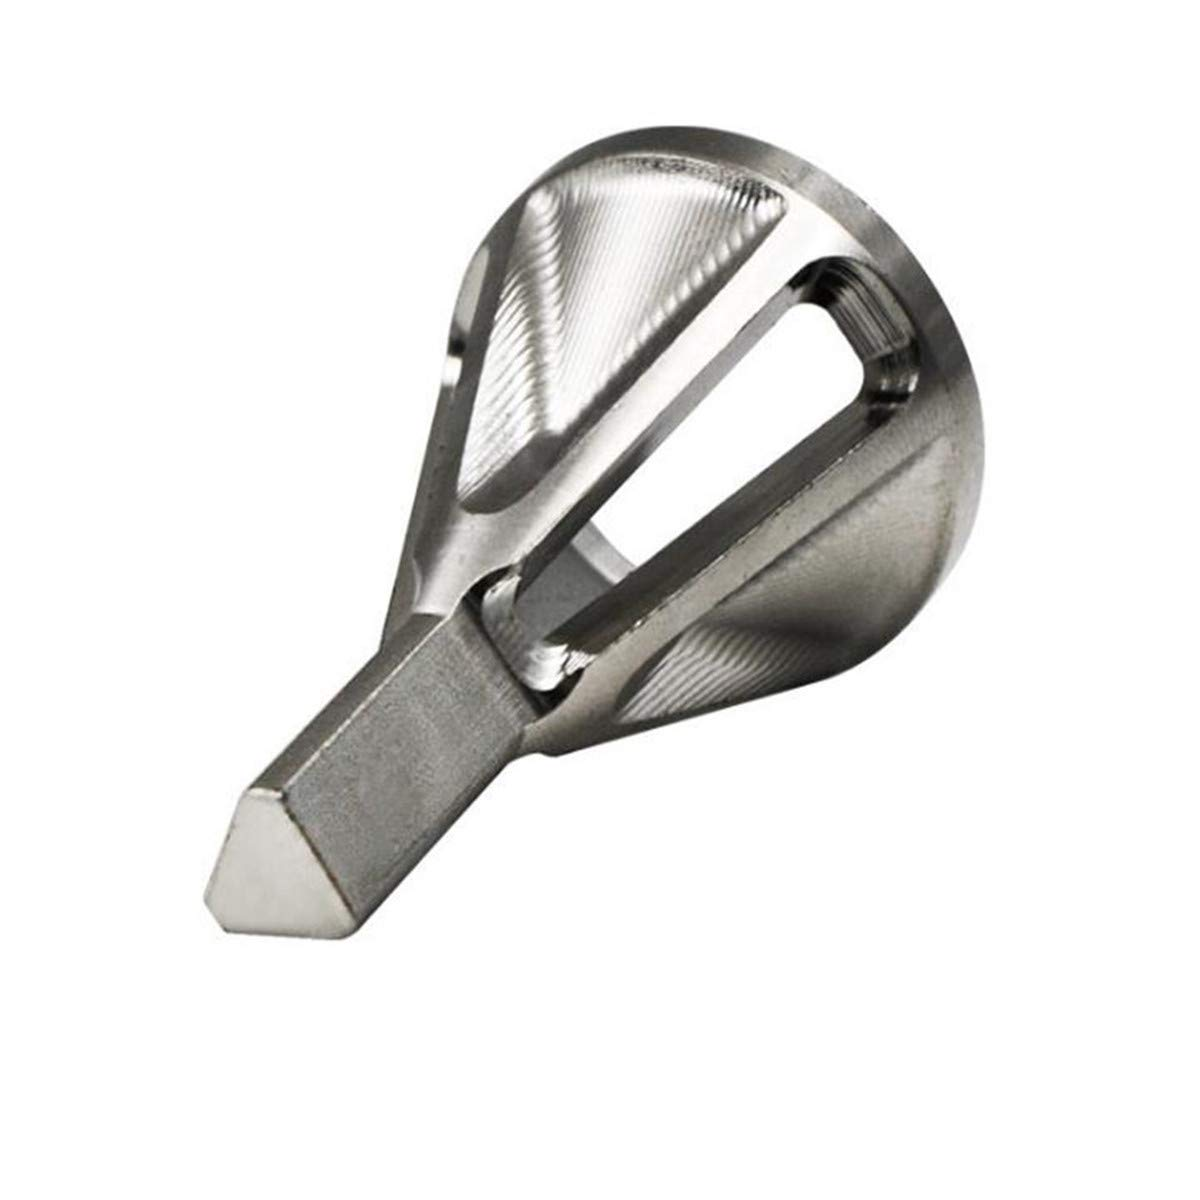 Beiswin Stainless Steel Chamfer Deburring Tool External Deburring Remove Tool for Electric Drill Bit